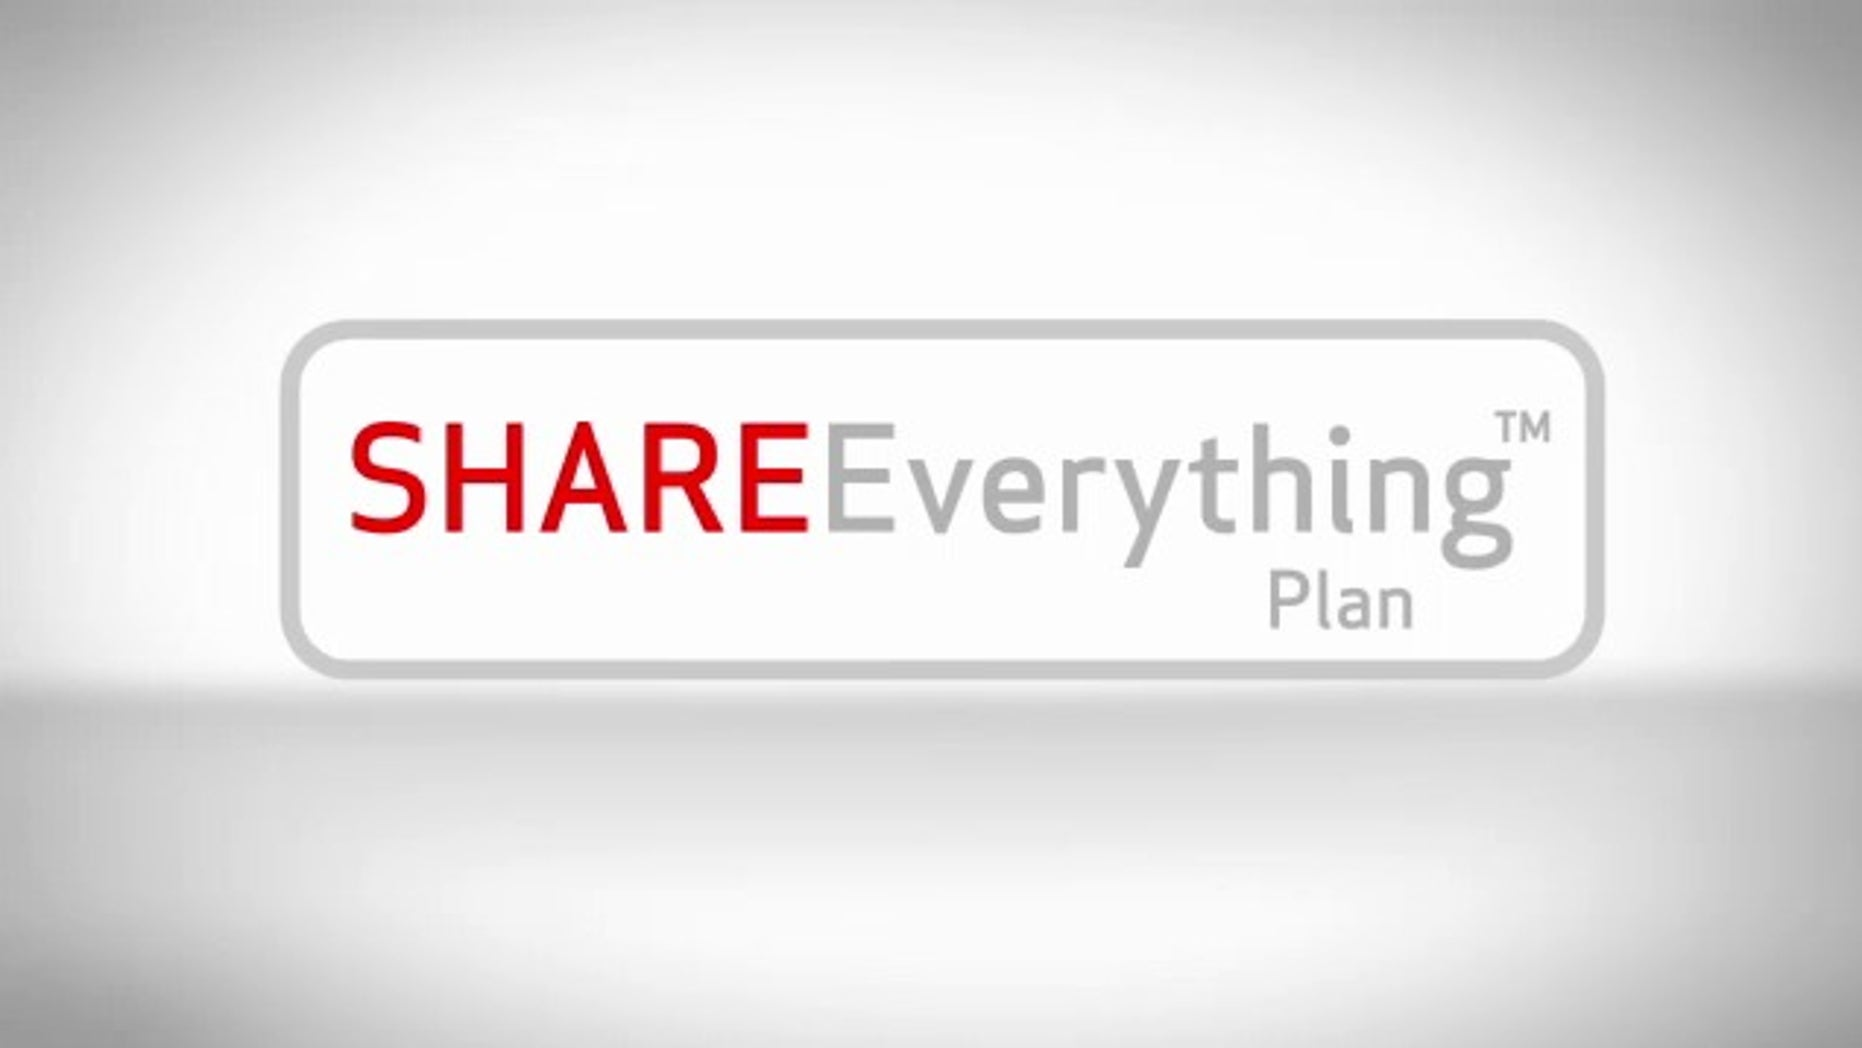 Verizon Introduces Share Everything Plans Based on Data